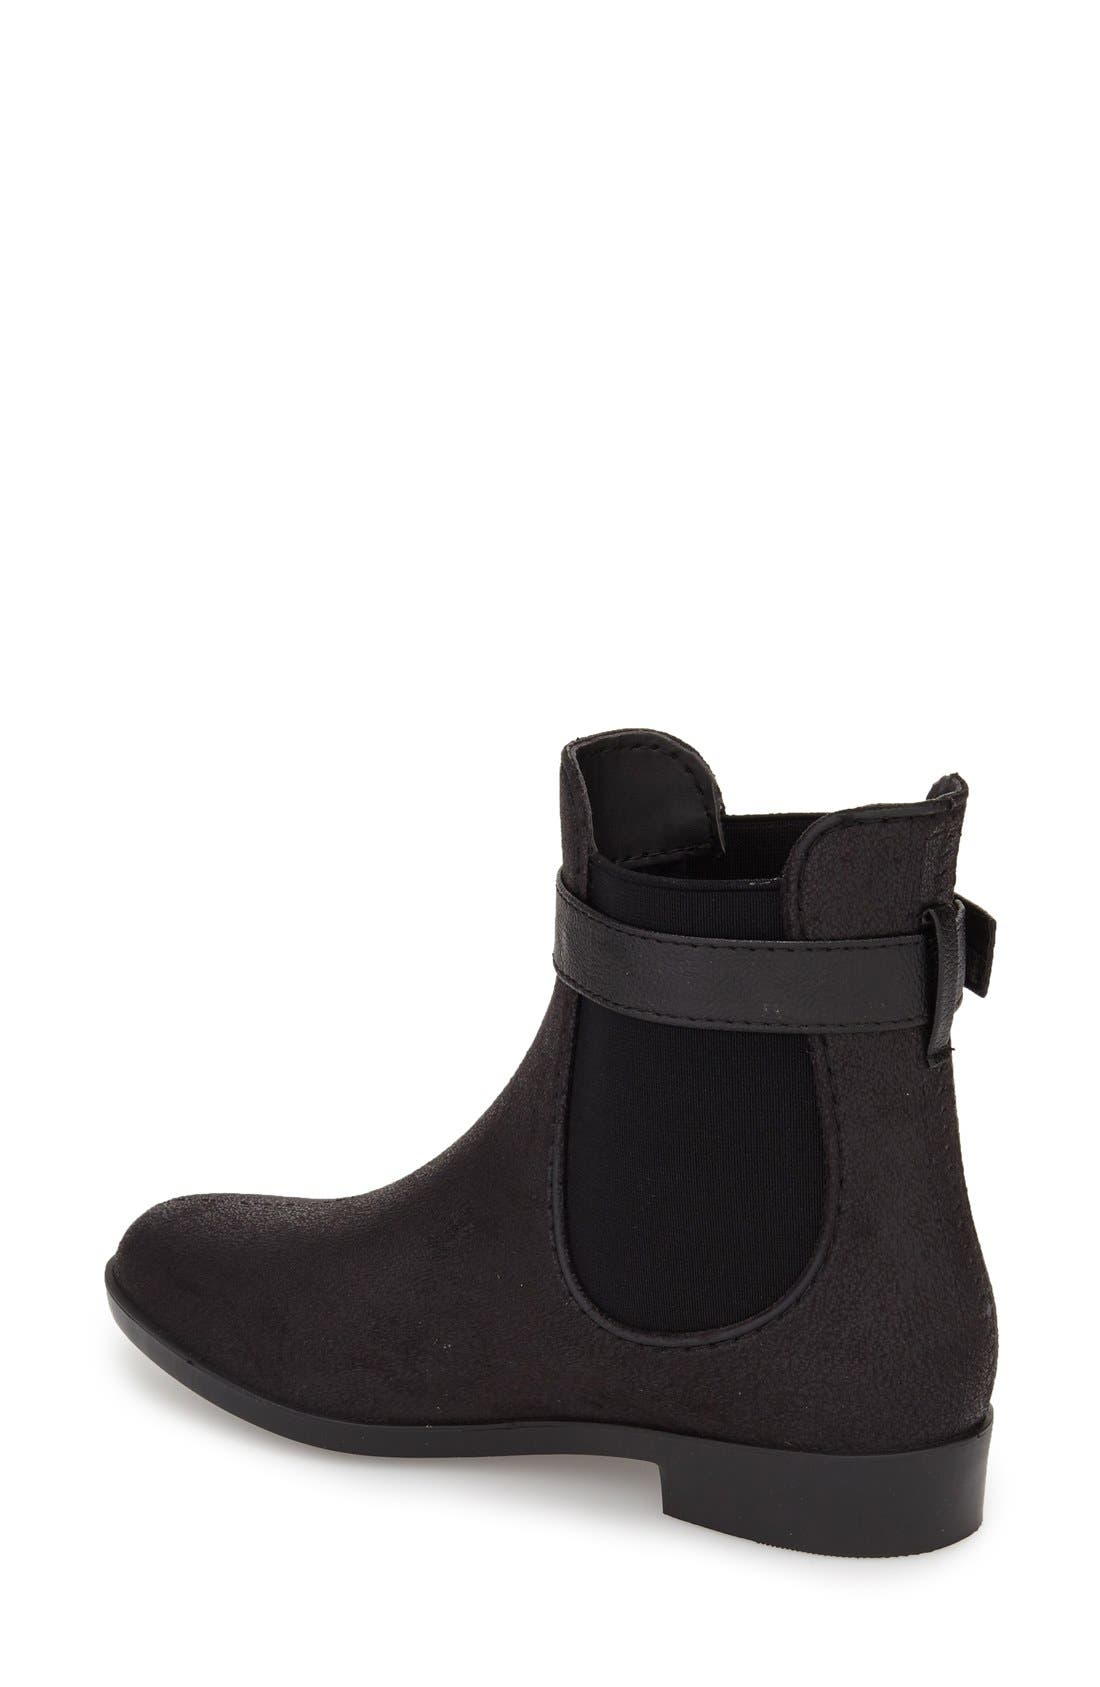 'Glasgow' Water Resistant Chelsea Boot,                             Alternate thumbnail 2, color,                             Black